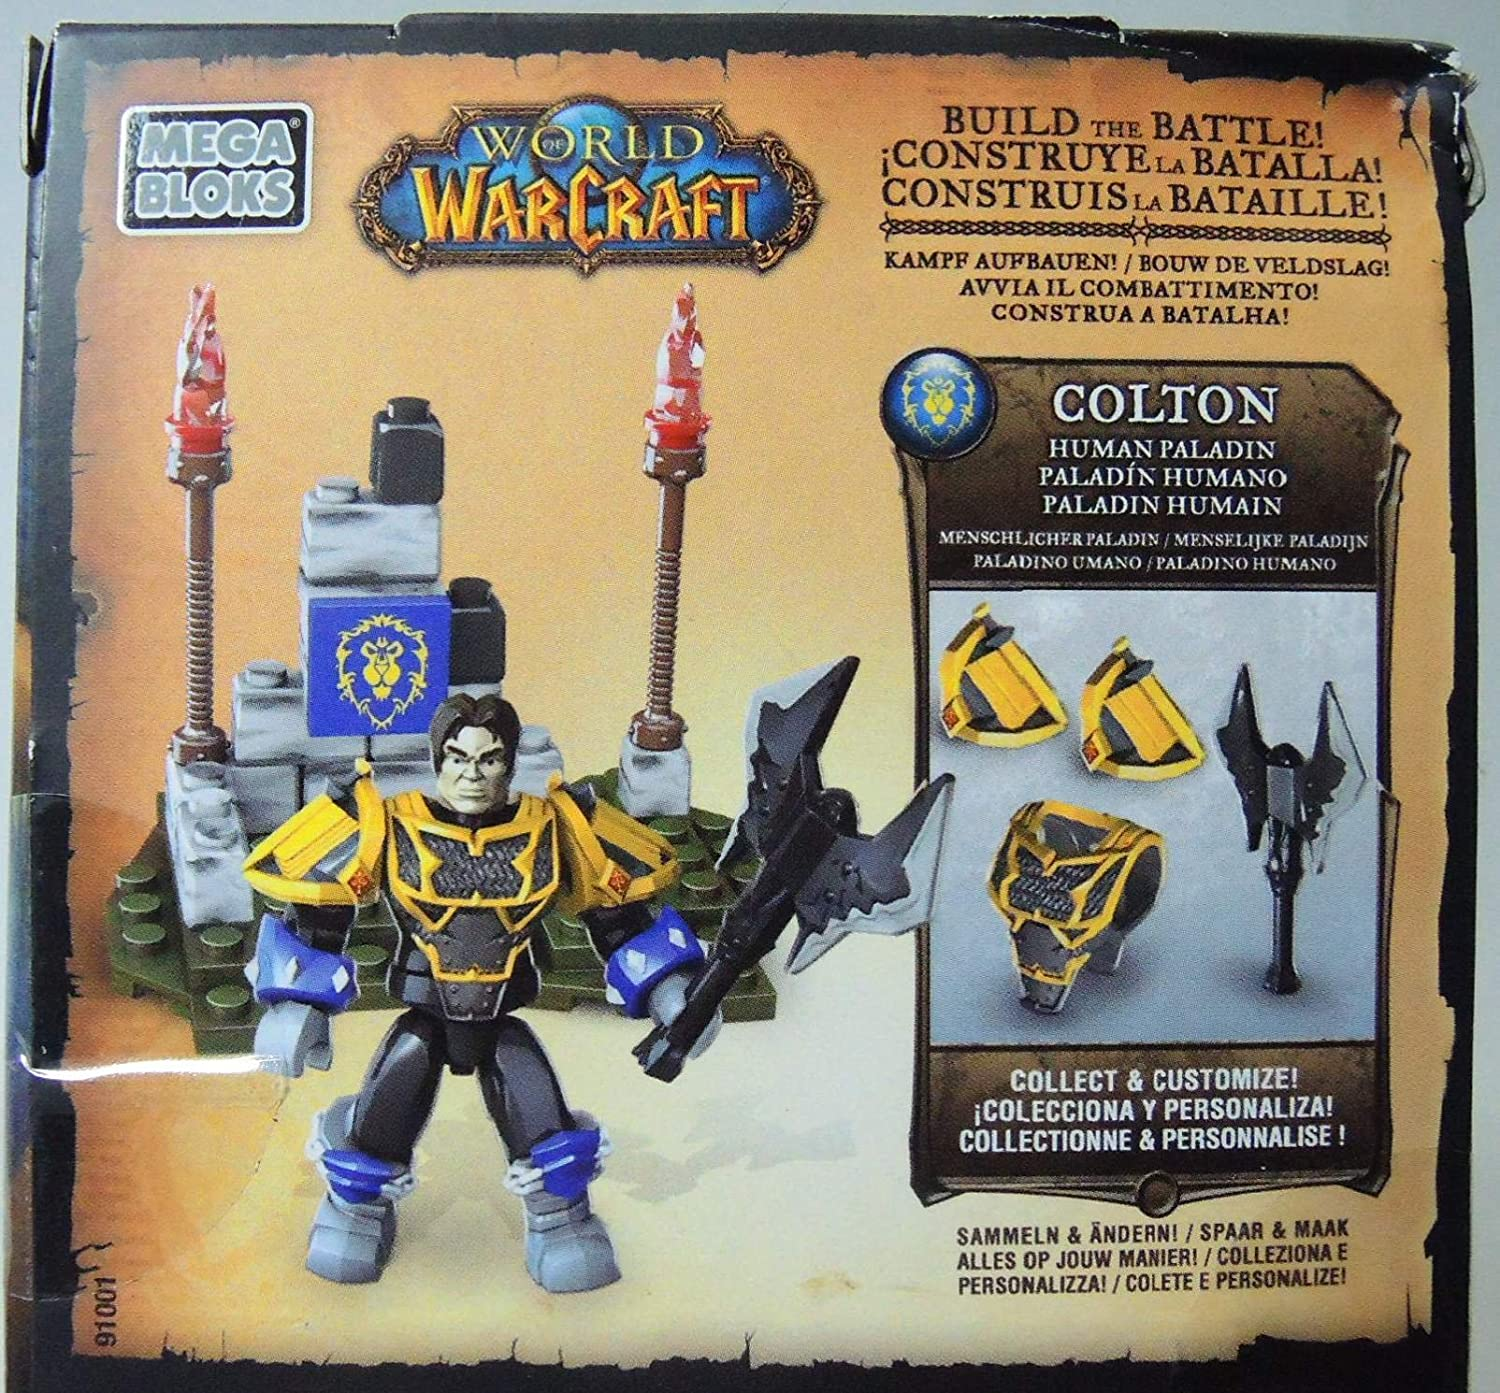 World of Warcraft Colton Mega Bloks 28 Teile Baukästen & Konstruktion